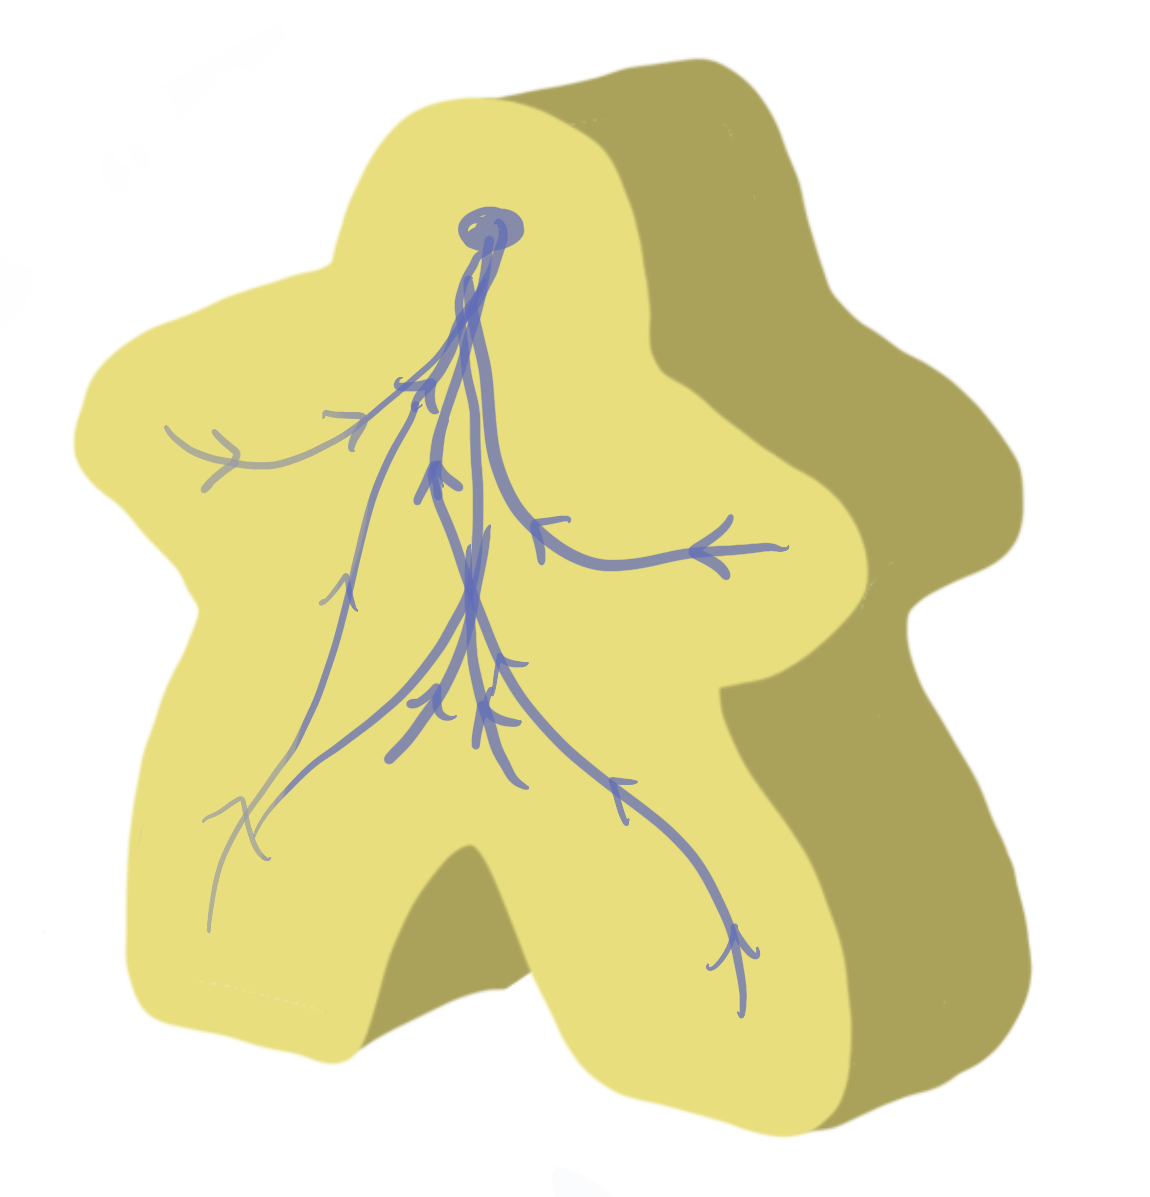 A meeple with a nervous system exposed